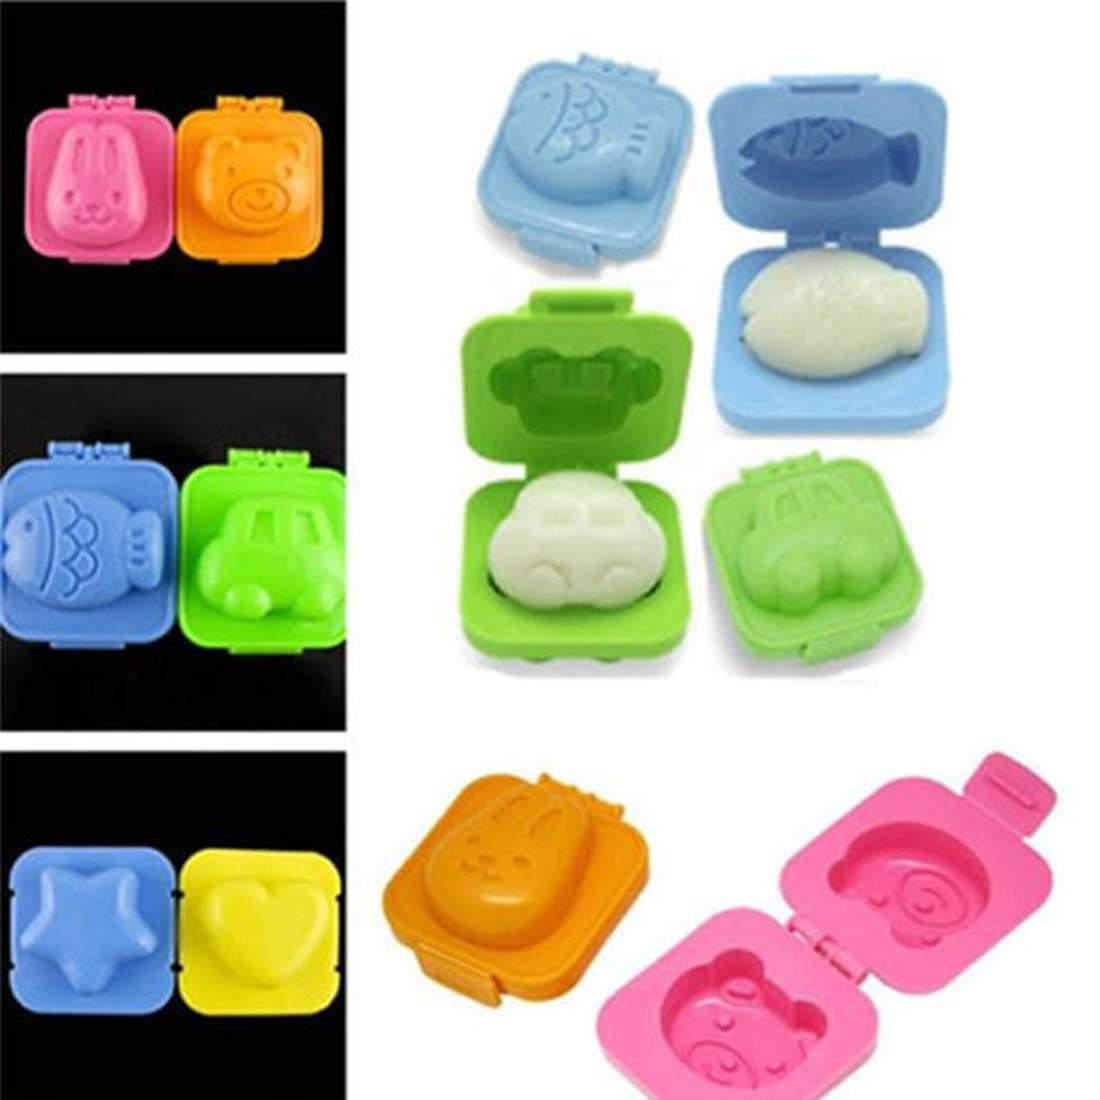 Image result for 6pc 3D Cartoon Food Mold Set